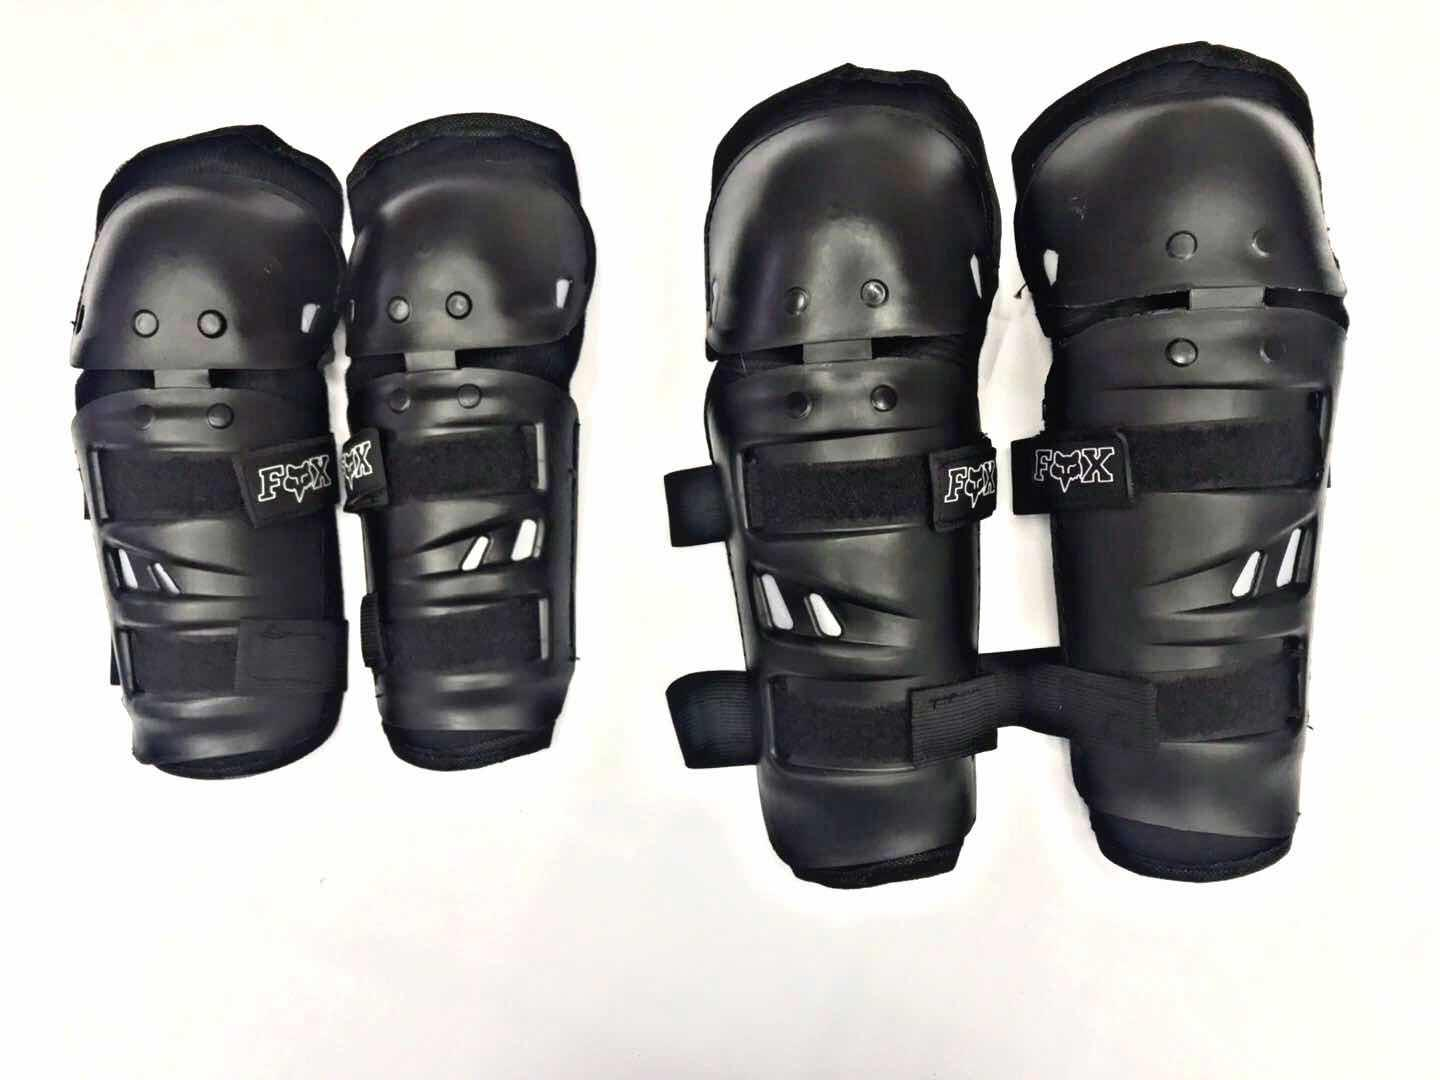 a026d9ec22 2019 summer new motorcycle riding equipment outdoor protection riding  equipment knee pads elbow knight protective gear